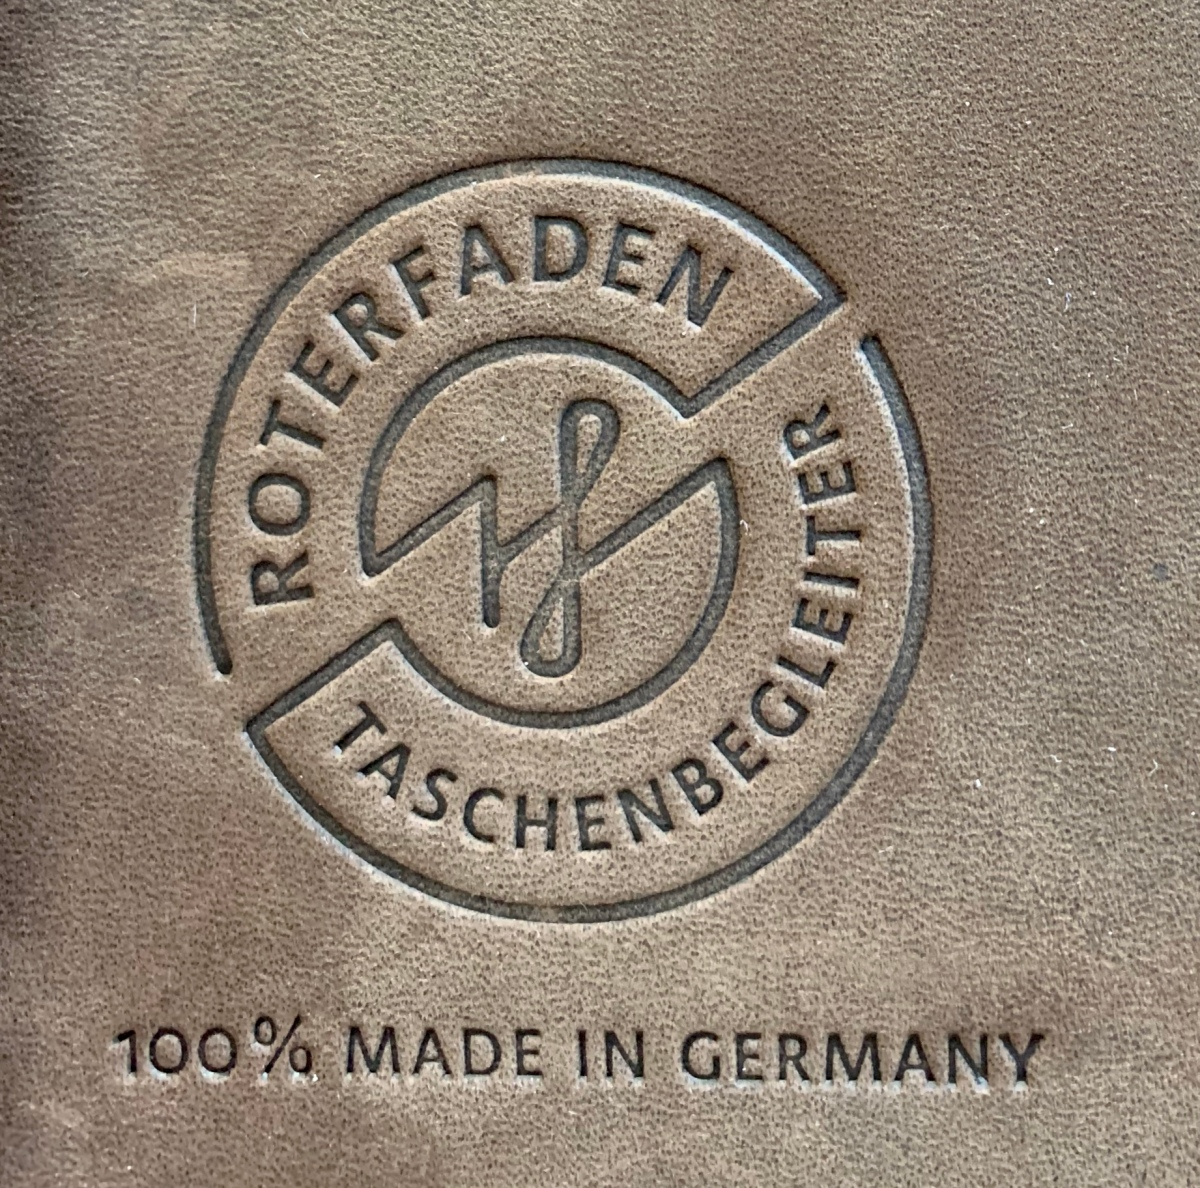 Roterfaden Taschenbegleiter: the deluxe, super-flexible note book with the complicated name